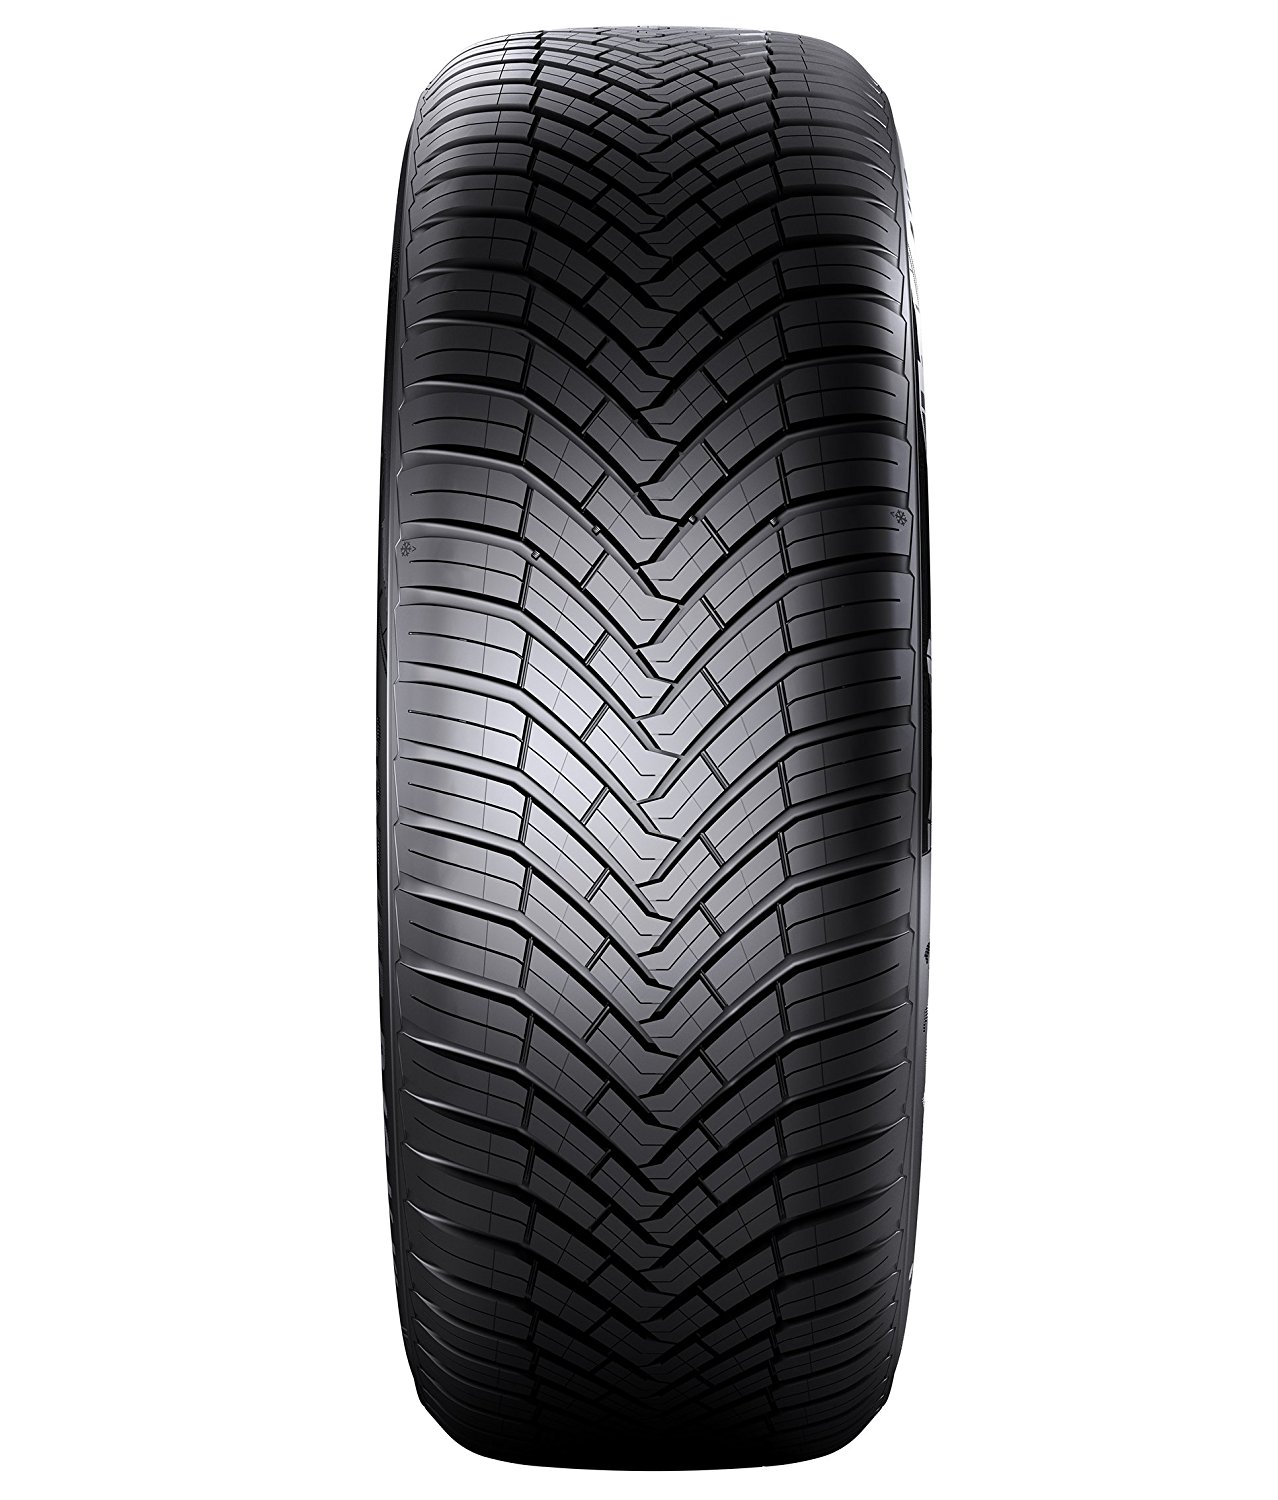 215/60R17 96H, Continental, AllSeasonContact